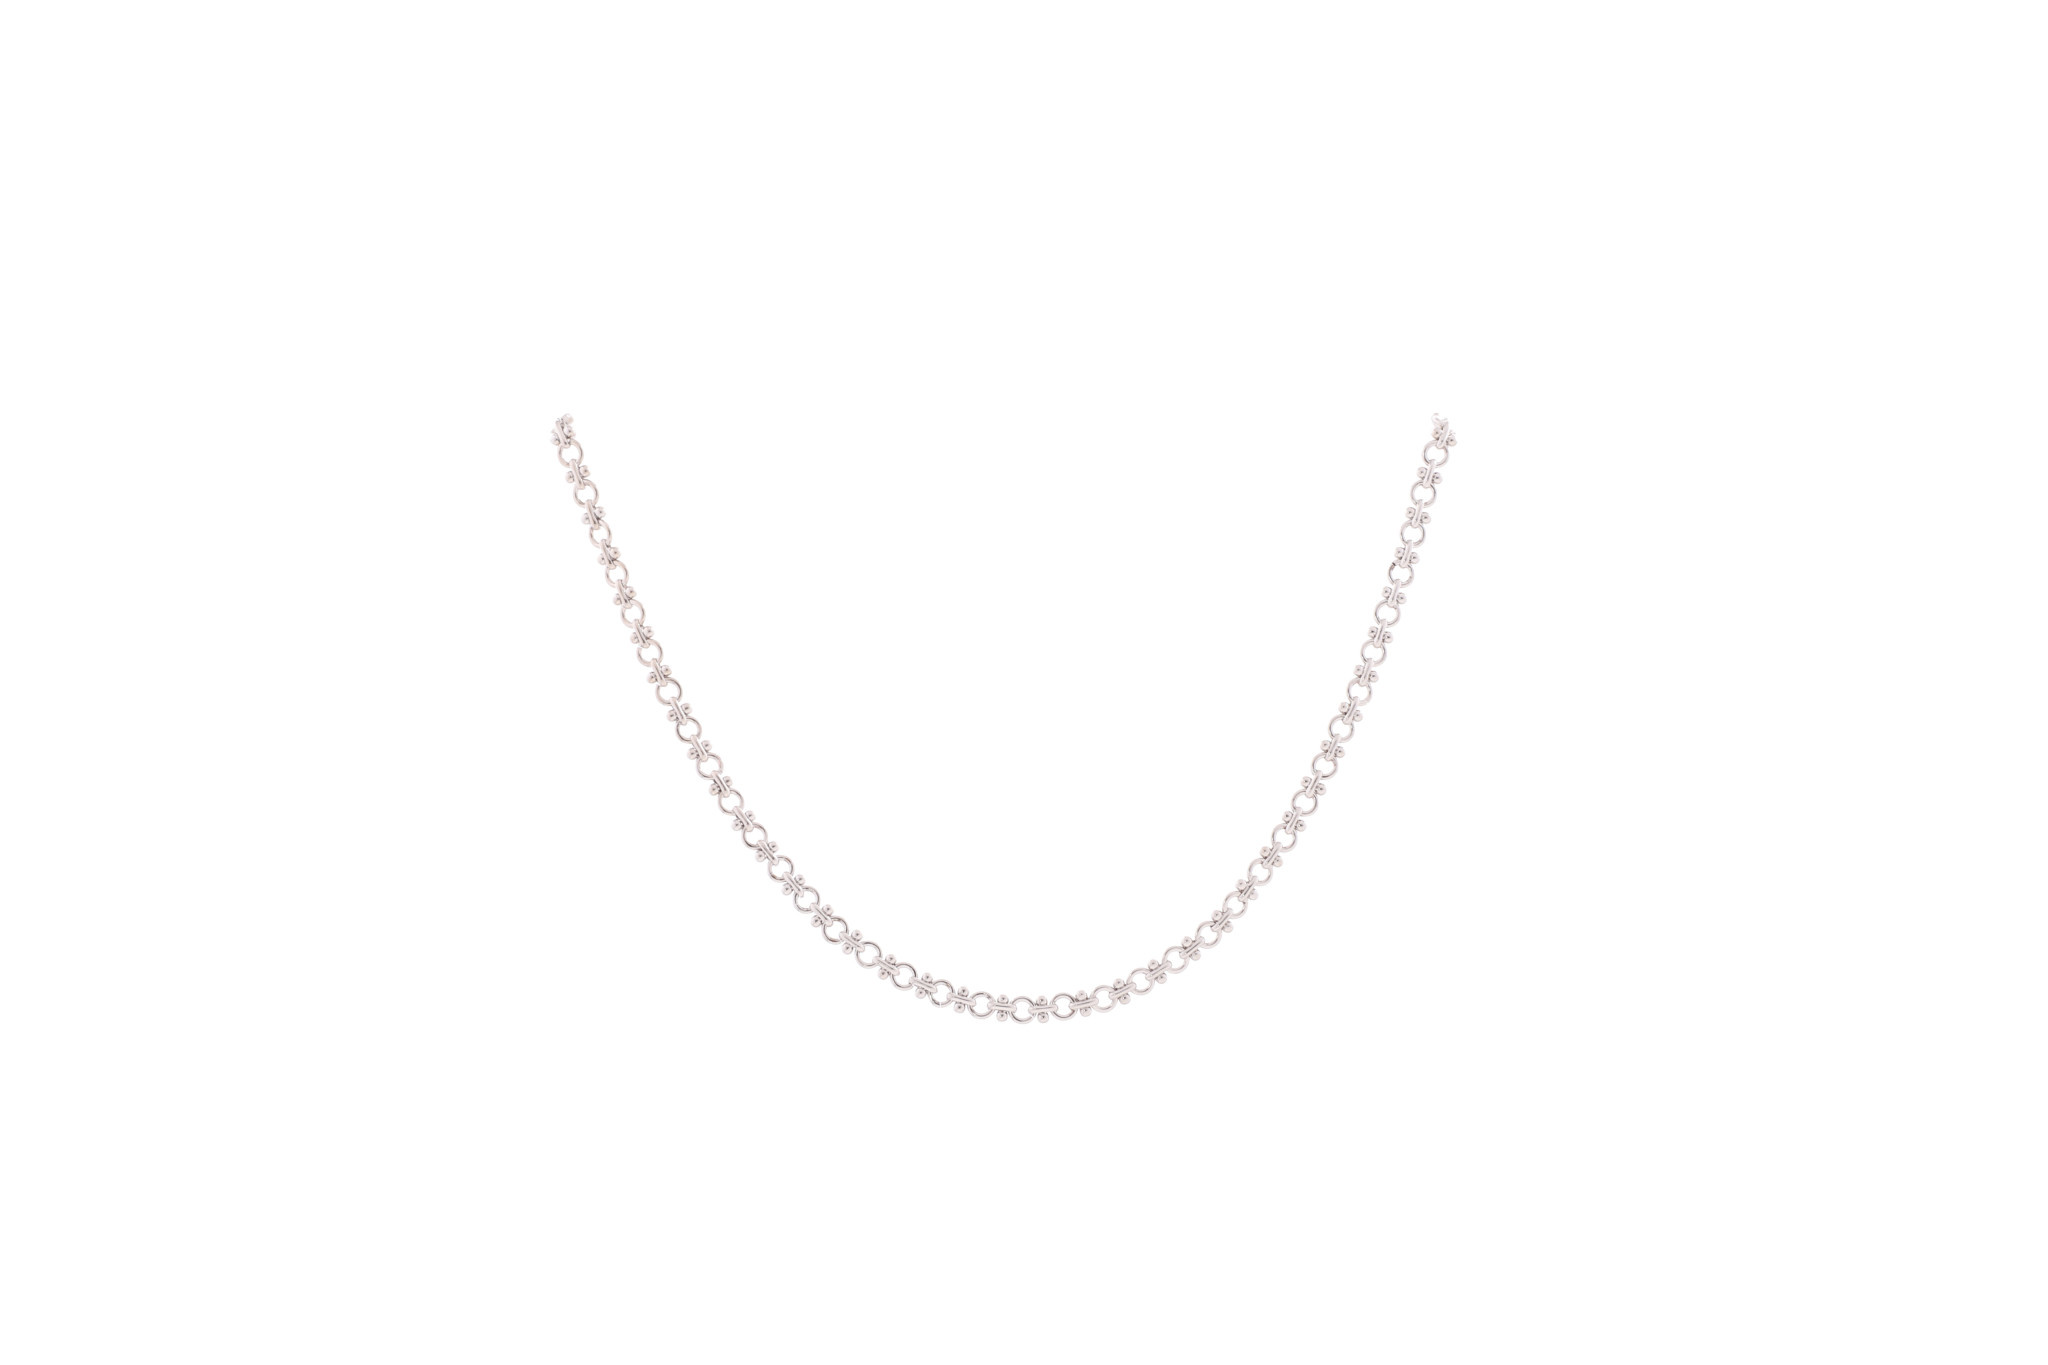 Small Fancy Chain Necklace